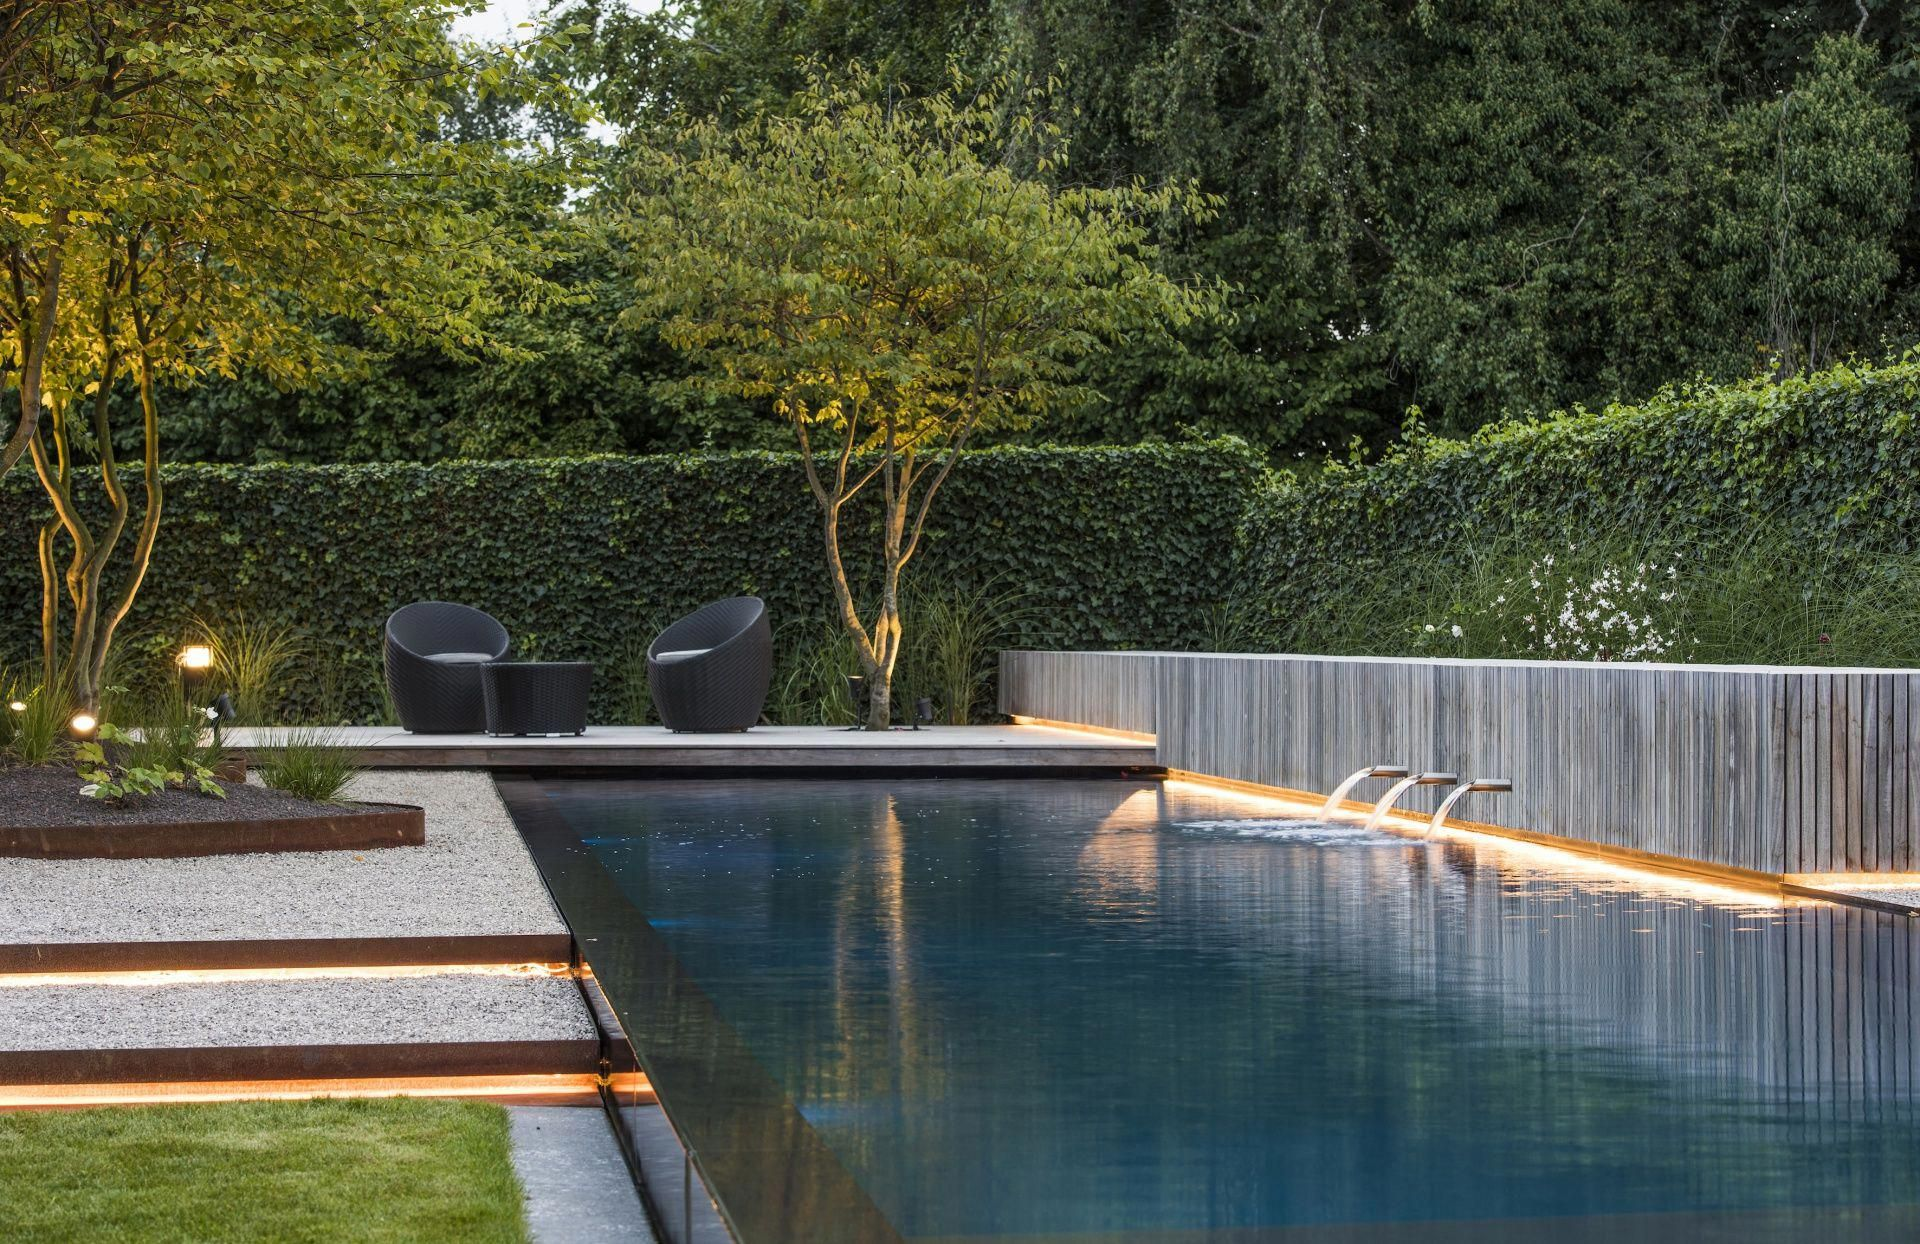 Garden Design Ideas Pinterest Gardendesignideas Pool Landscape Design Pool Landscaping Backyard Pool Designs